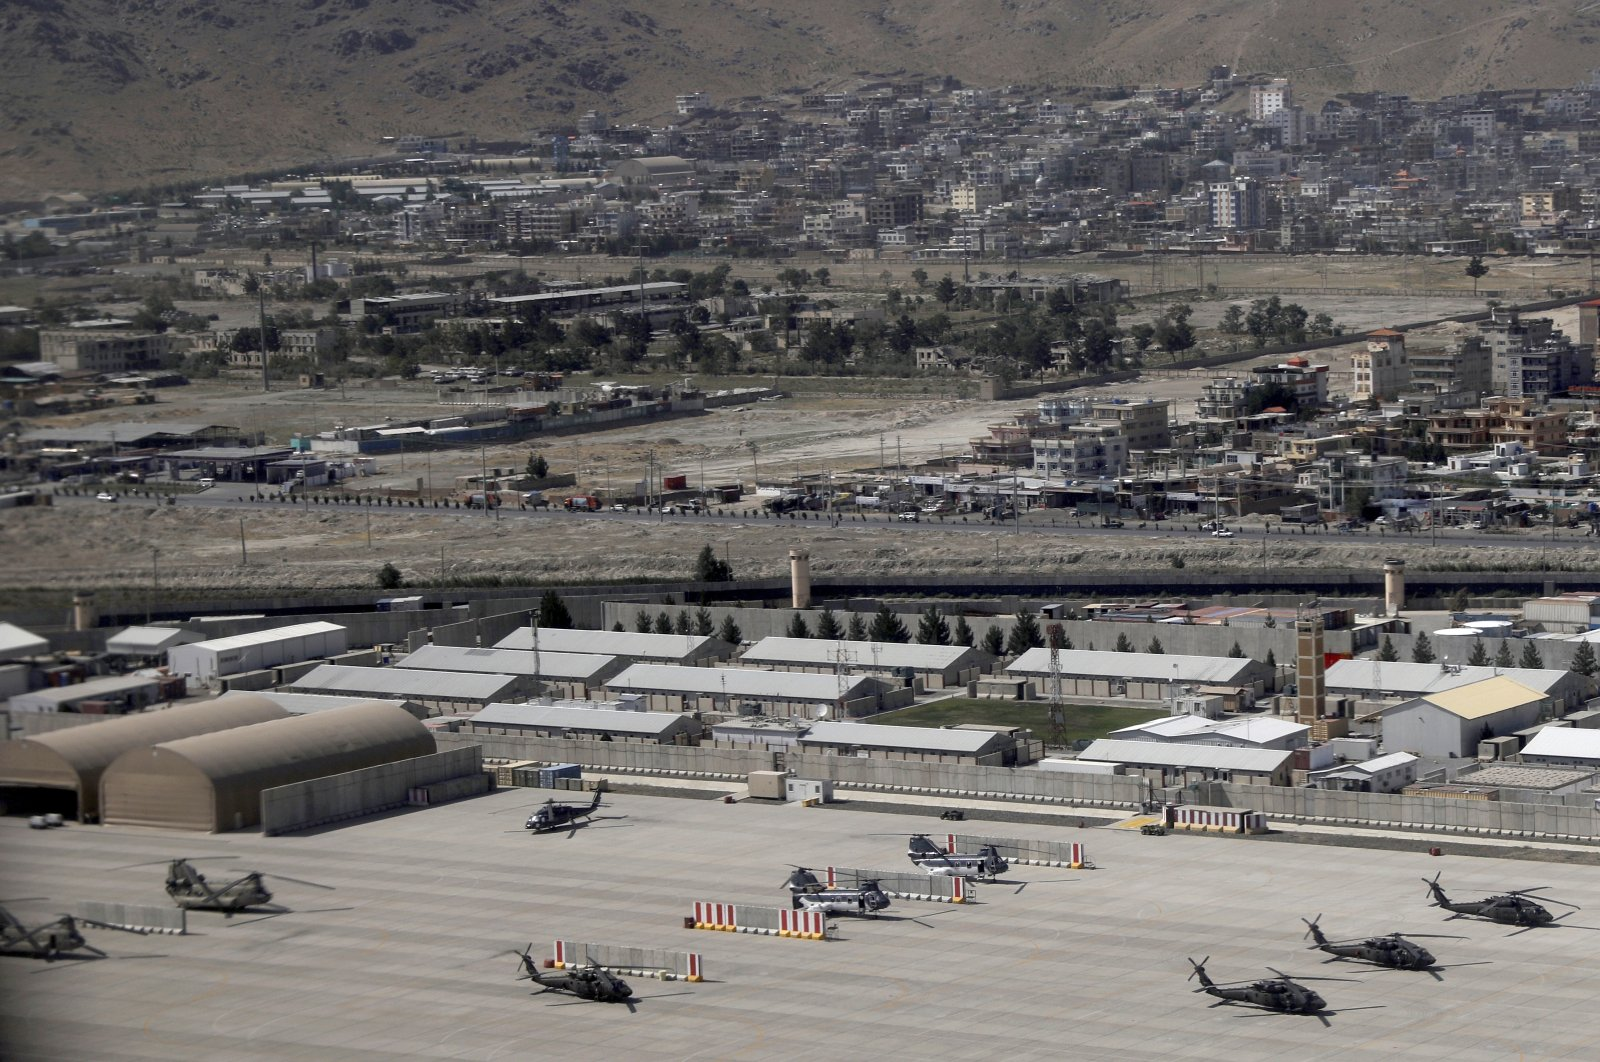 Kabul Military Airport as seen through a window of a commercial airplane, Kabul, Afghanistan, July 7, 2021. (AP Photo)